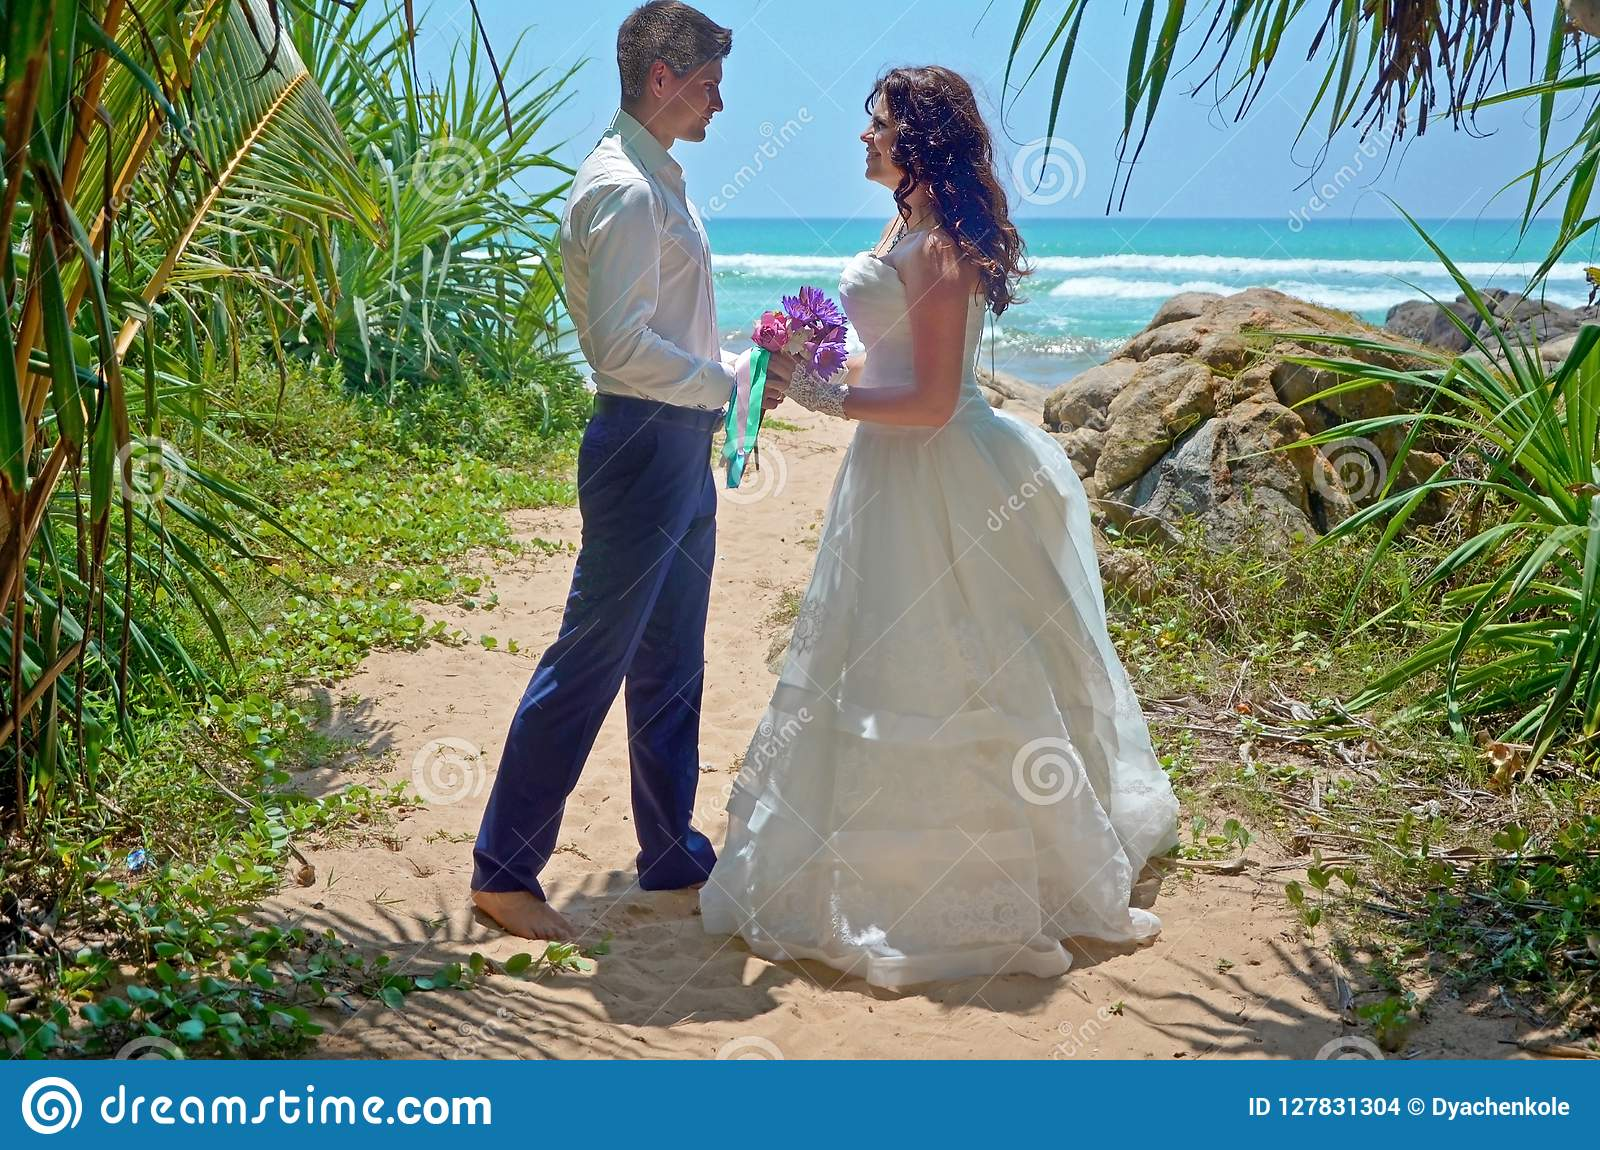 Wedding ceremony on beach in tropical palm tree, wedding and honeymoon. Beautiful bride and groom in the tropics on the island